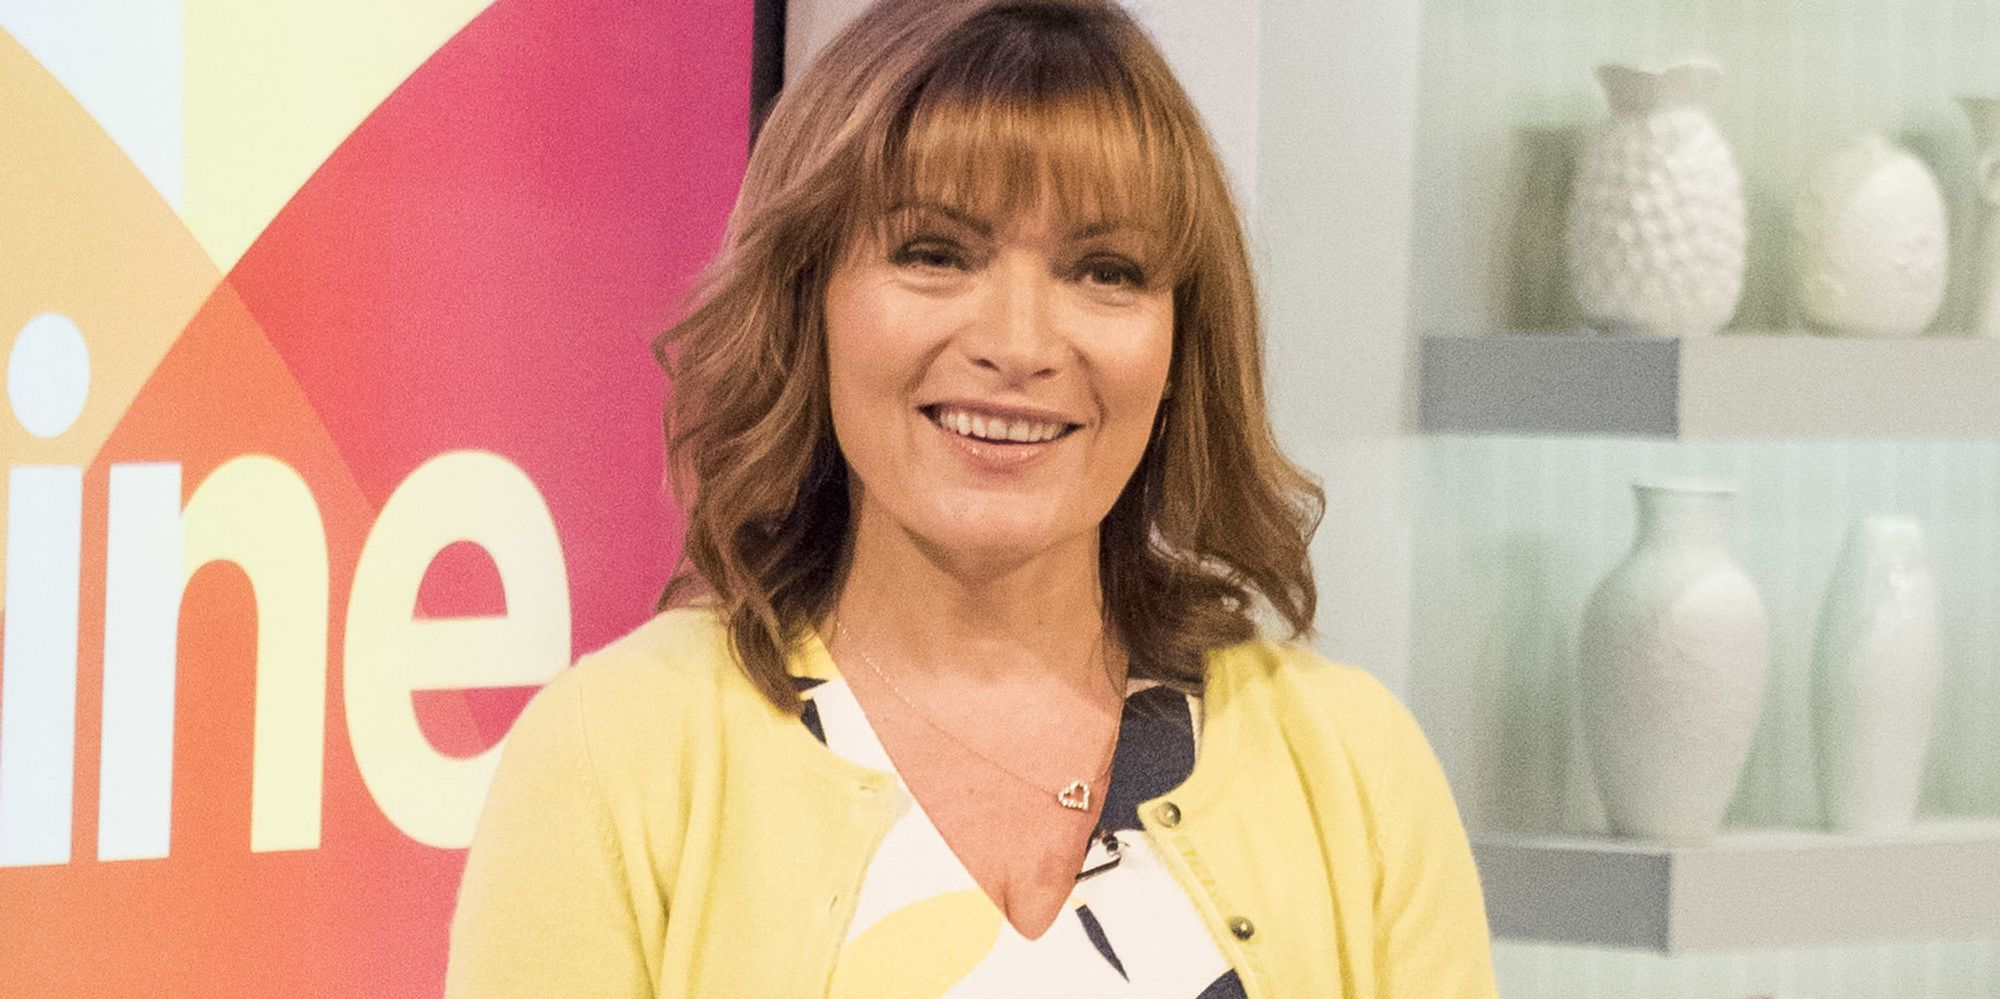 lorraine kelly reveals the worst a-list guest who's been on her